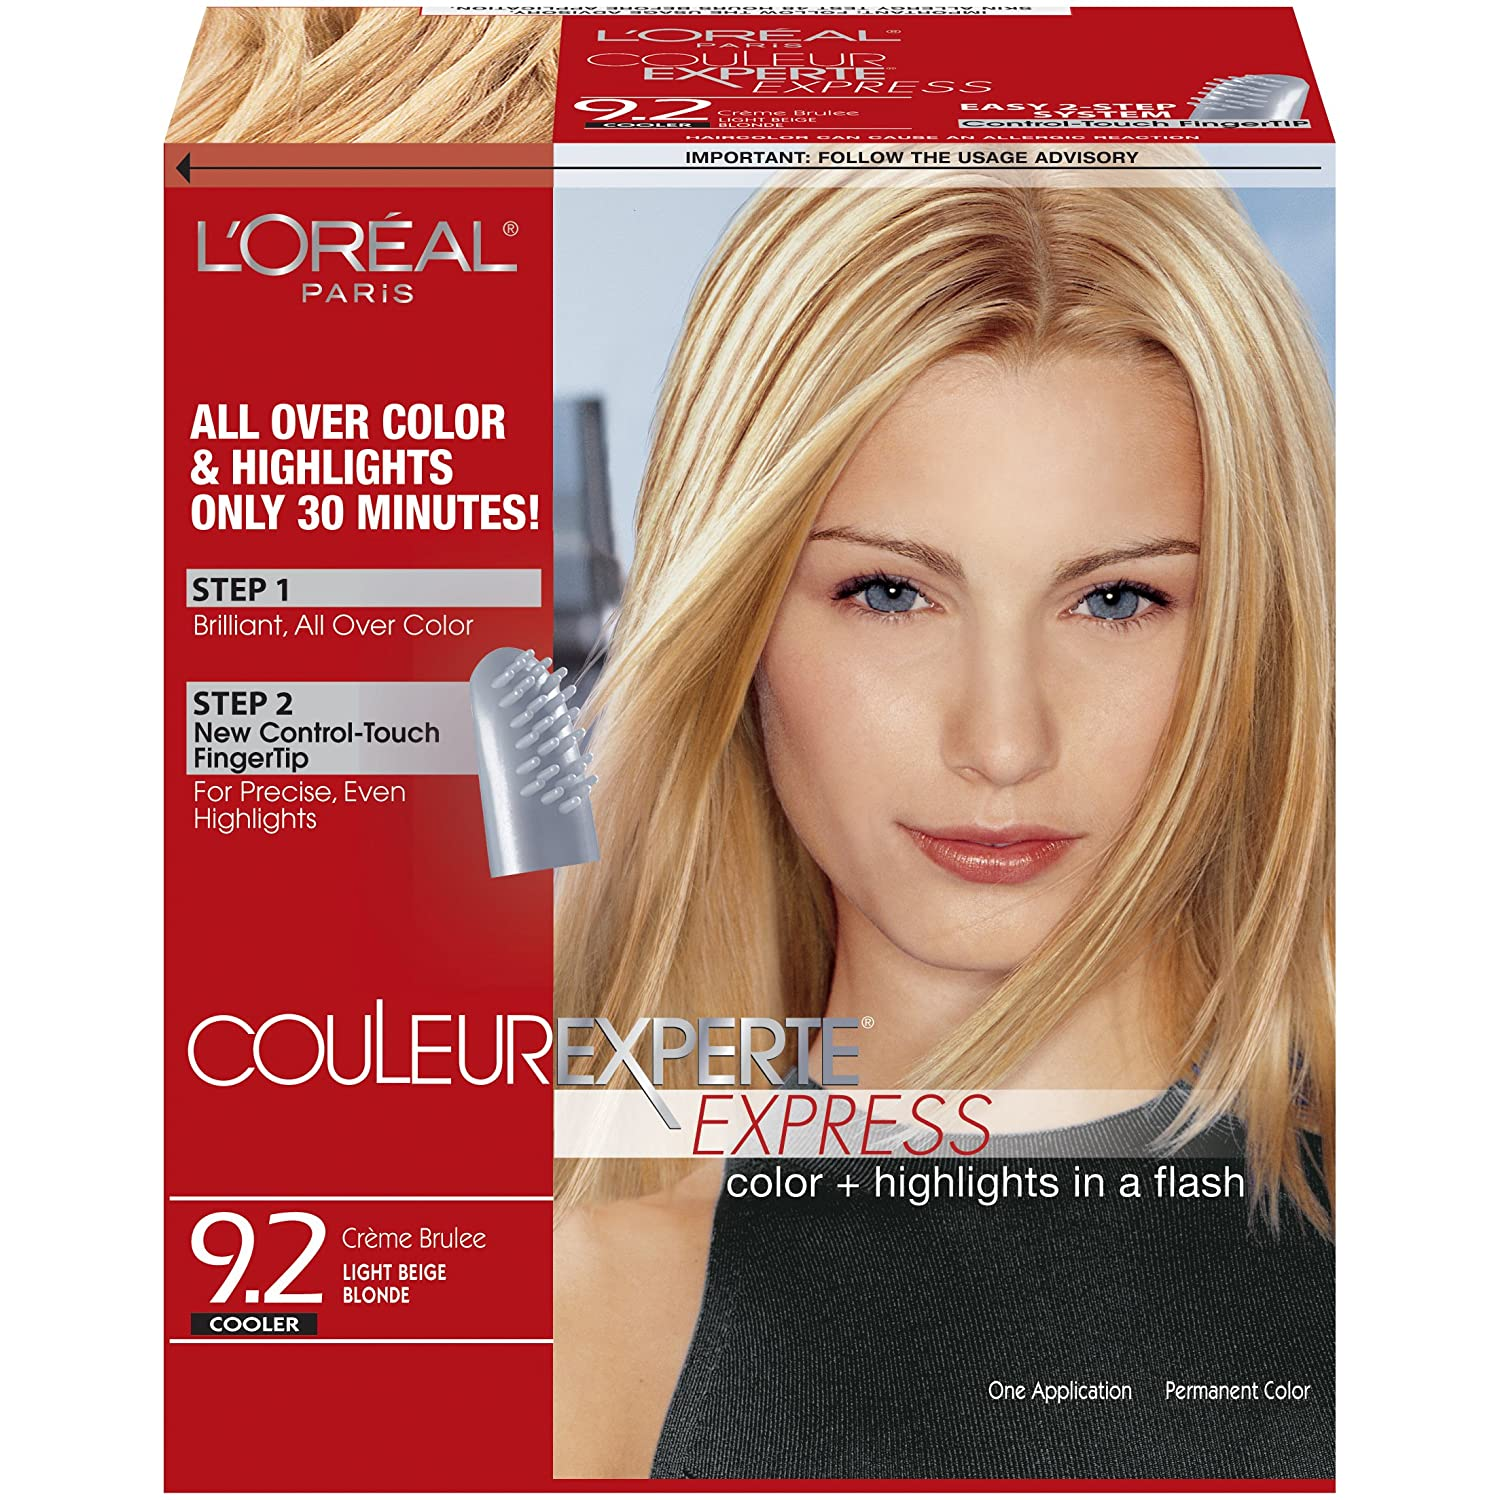 Loreal Paris Couleur Experte Express Hair Color 92 Light Beige